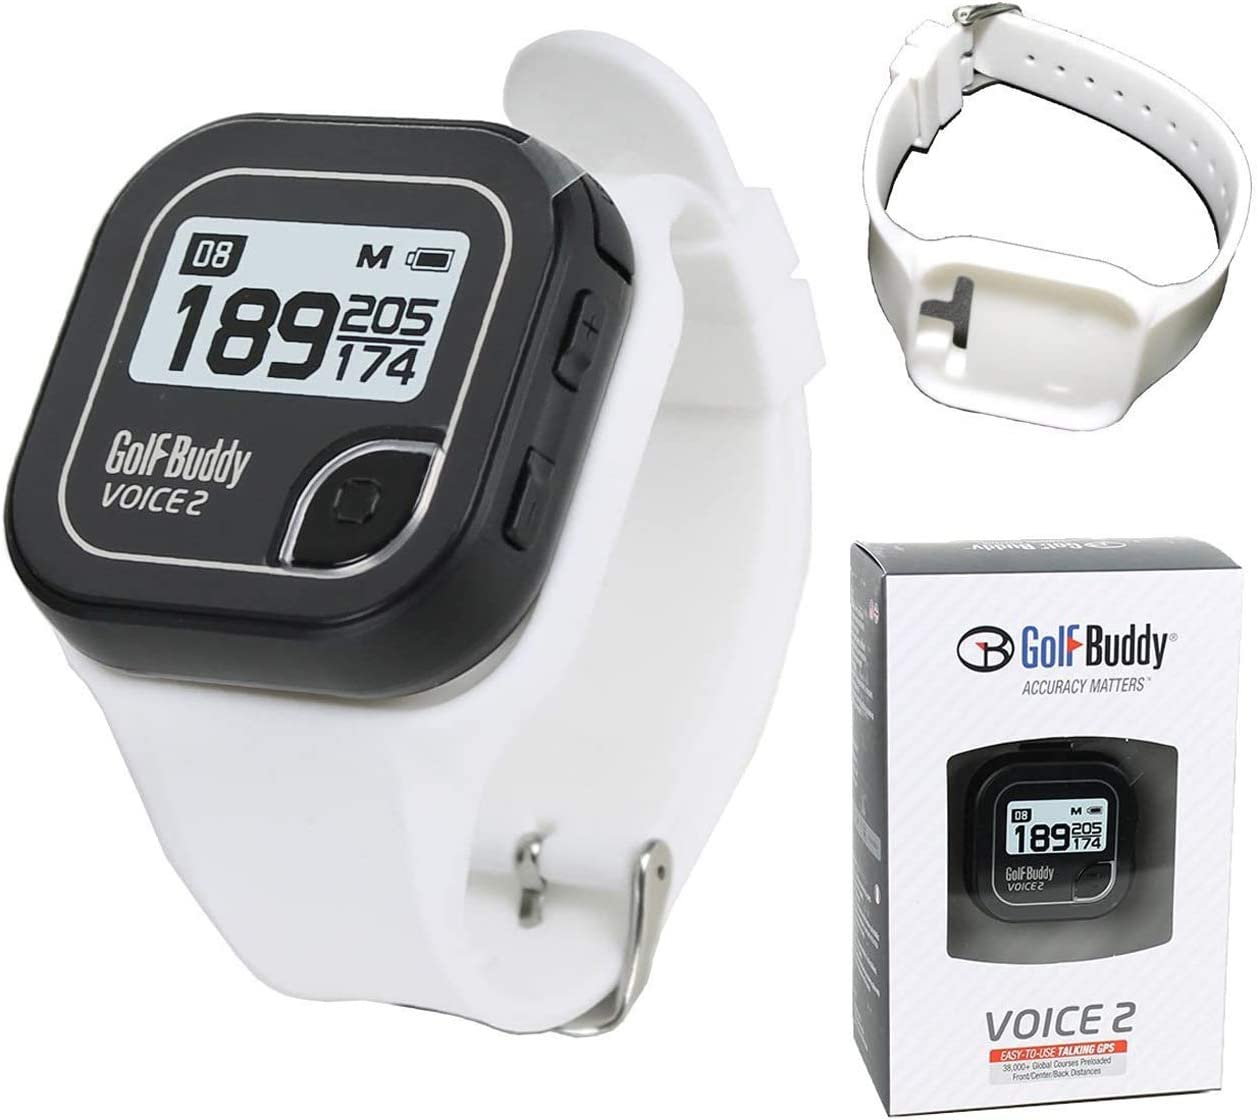 BUNDLE: 2016 Golf Buddy Voice 2 Golfbuddy Voice2 Easy-To-Use Talking GPS + Golf Buddy Wristband (White)